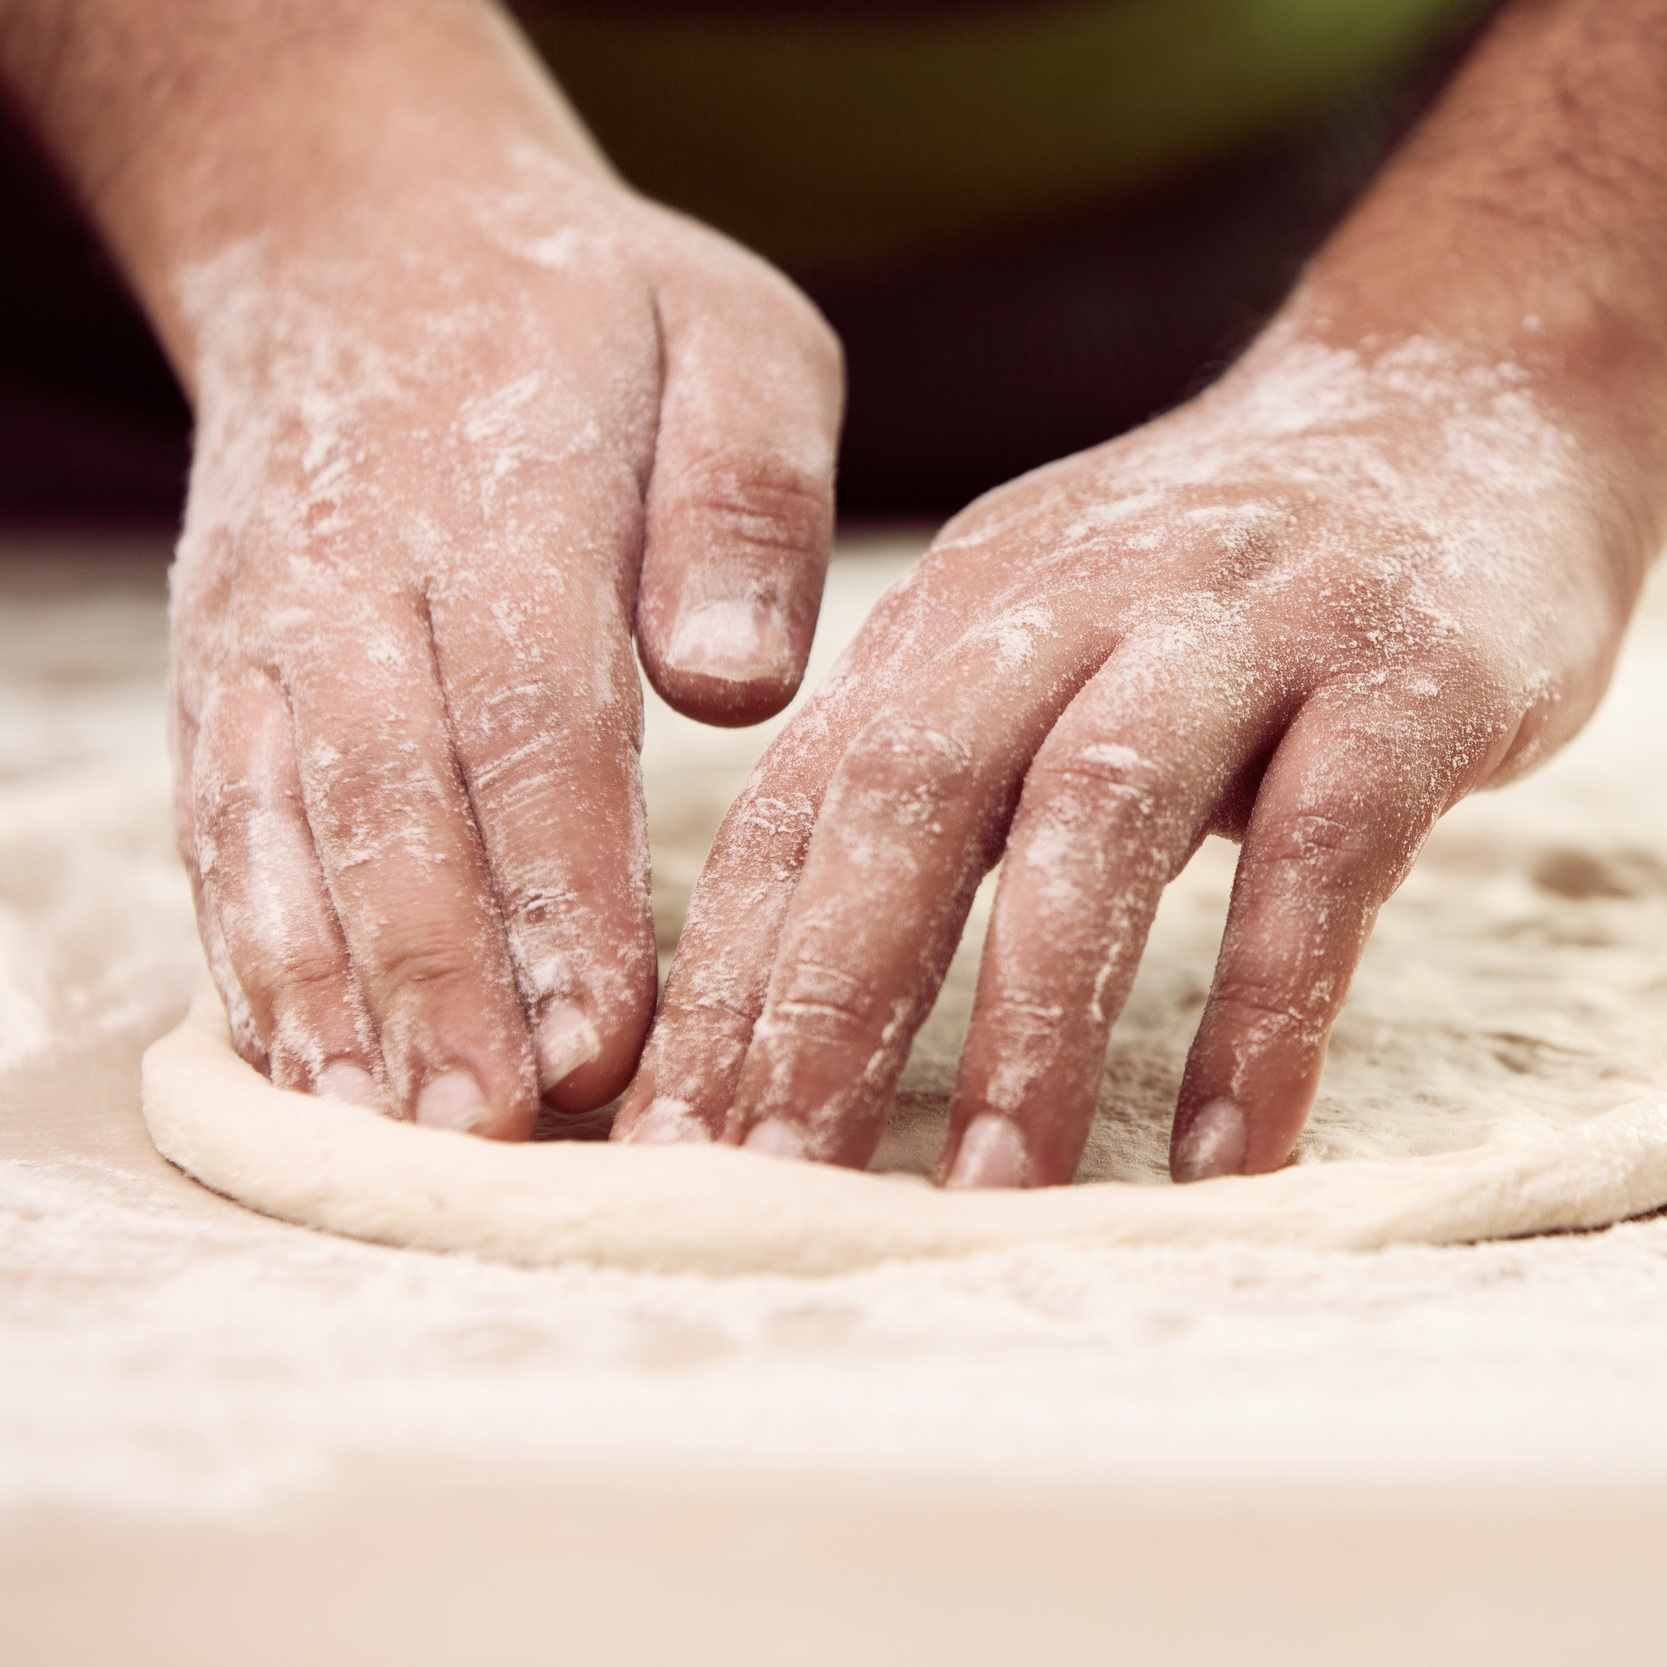 Specifically designed for use in Pizzerias and Italian restaurants, we pack all major flour formulations to meet your every baking need.    Contact Us to learn more.